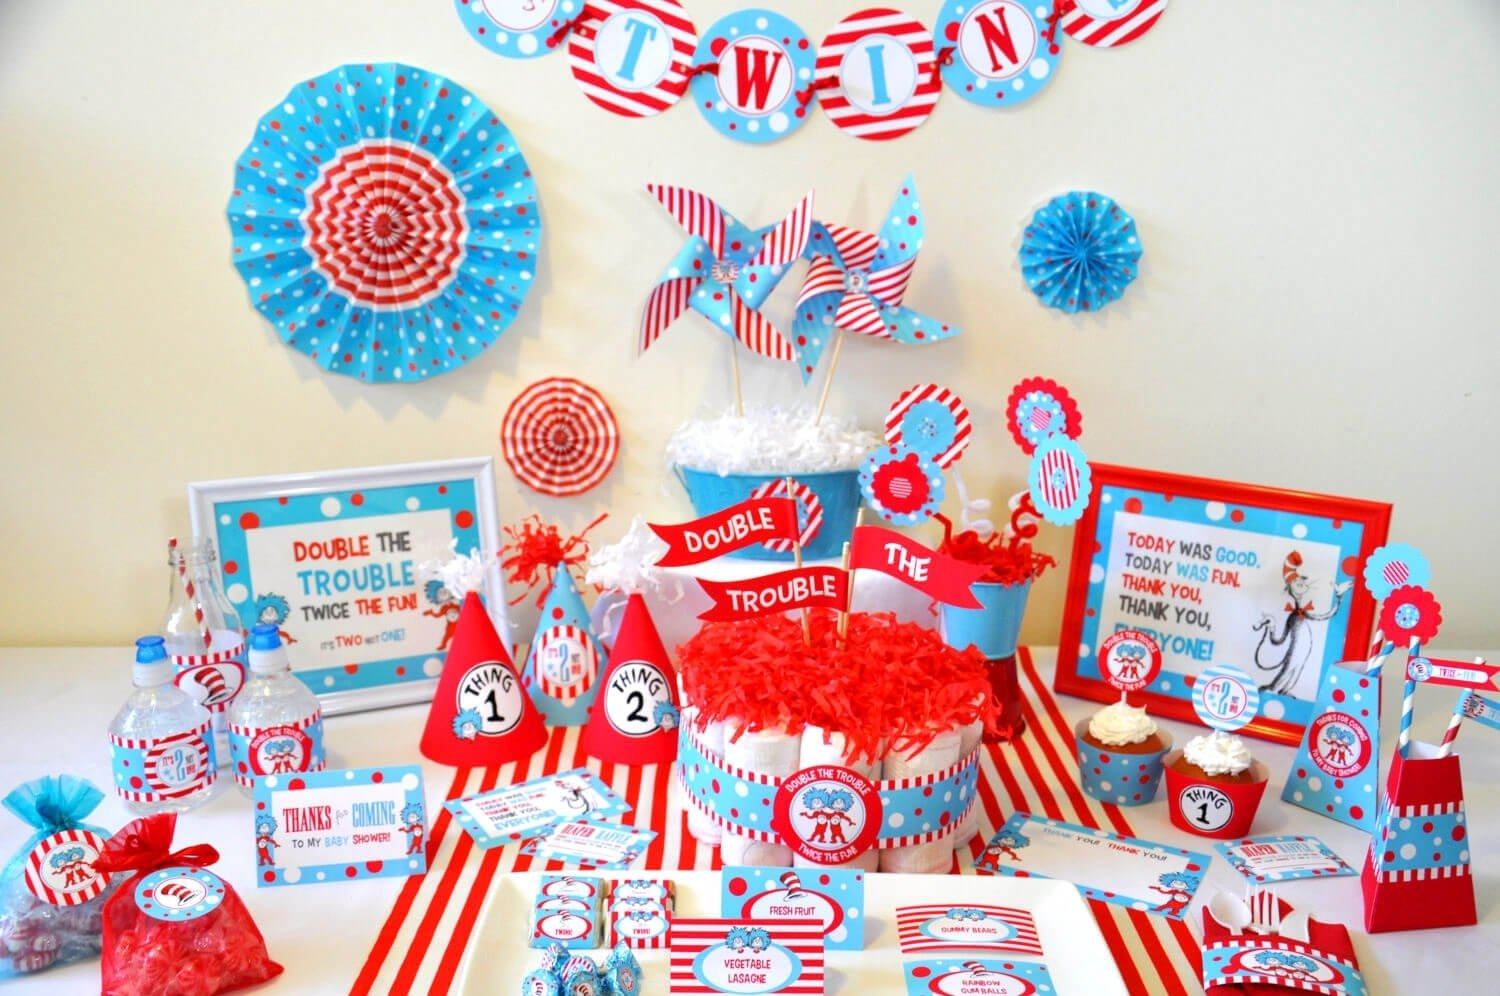 10 Cute Twin Baby Shower Theme Ideas baby shower themes twins e280a2 baby showers ideas